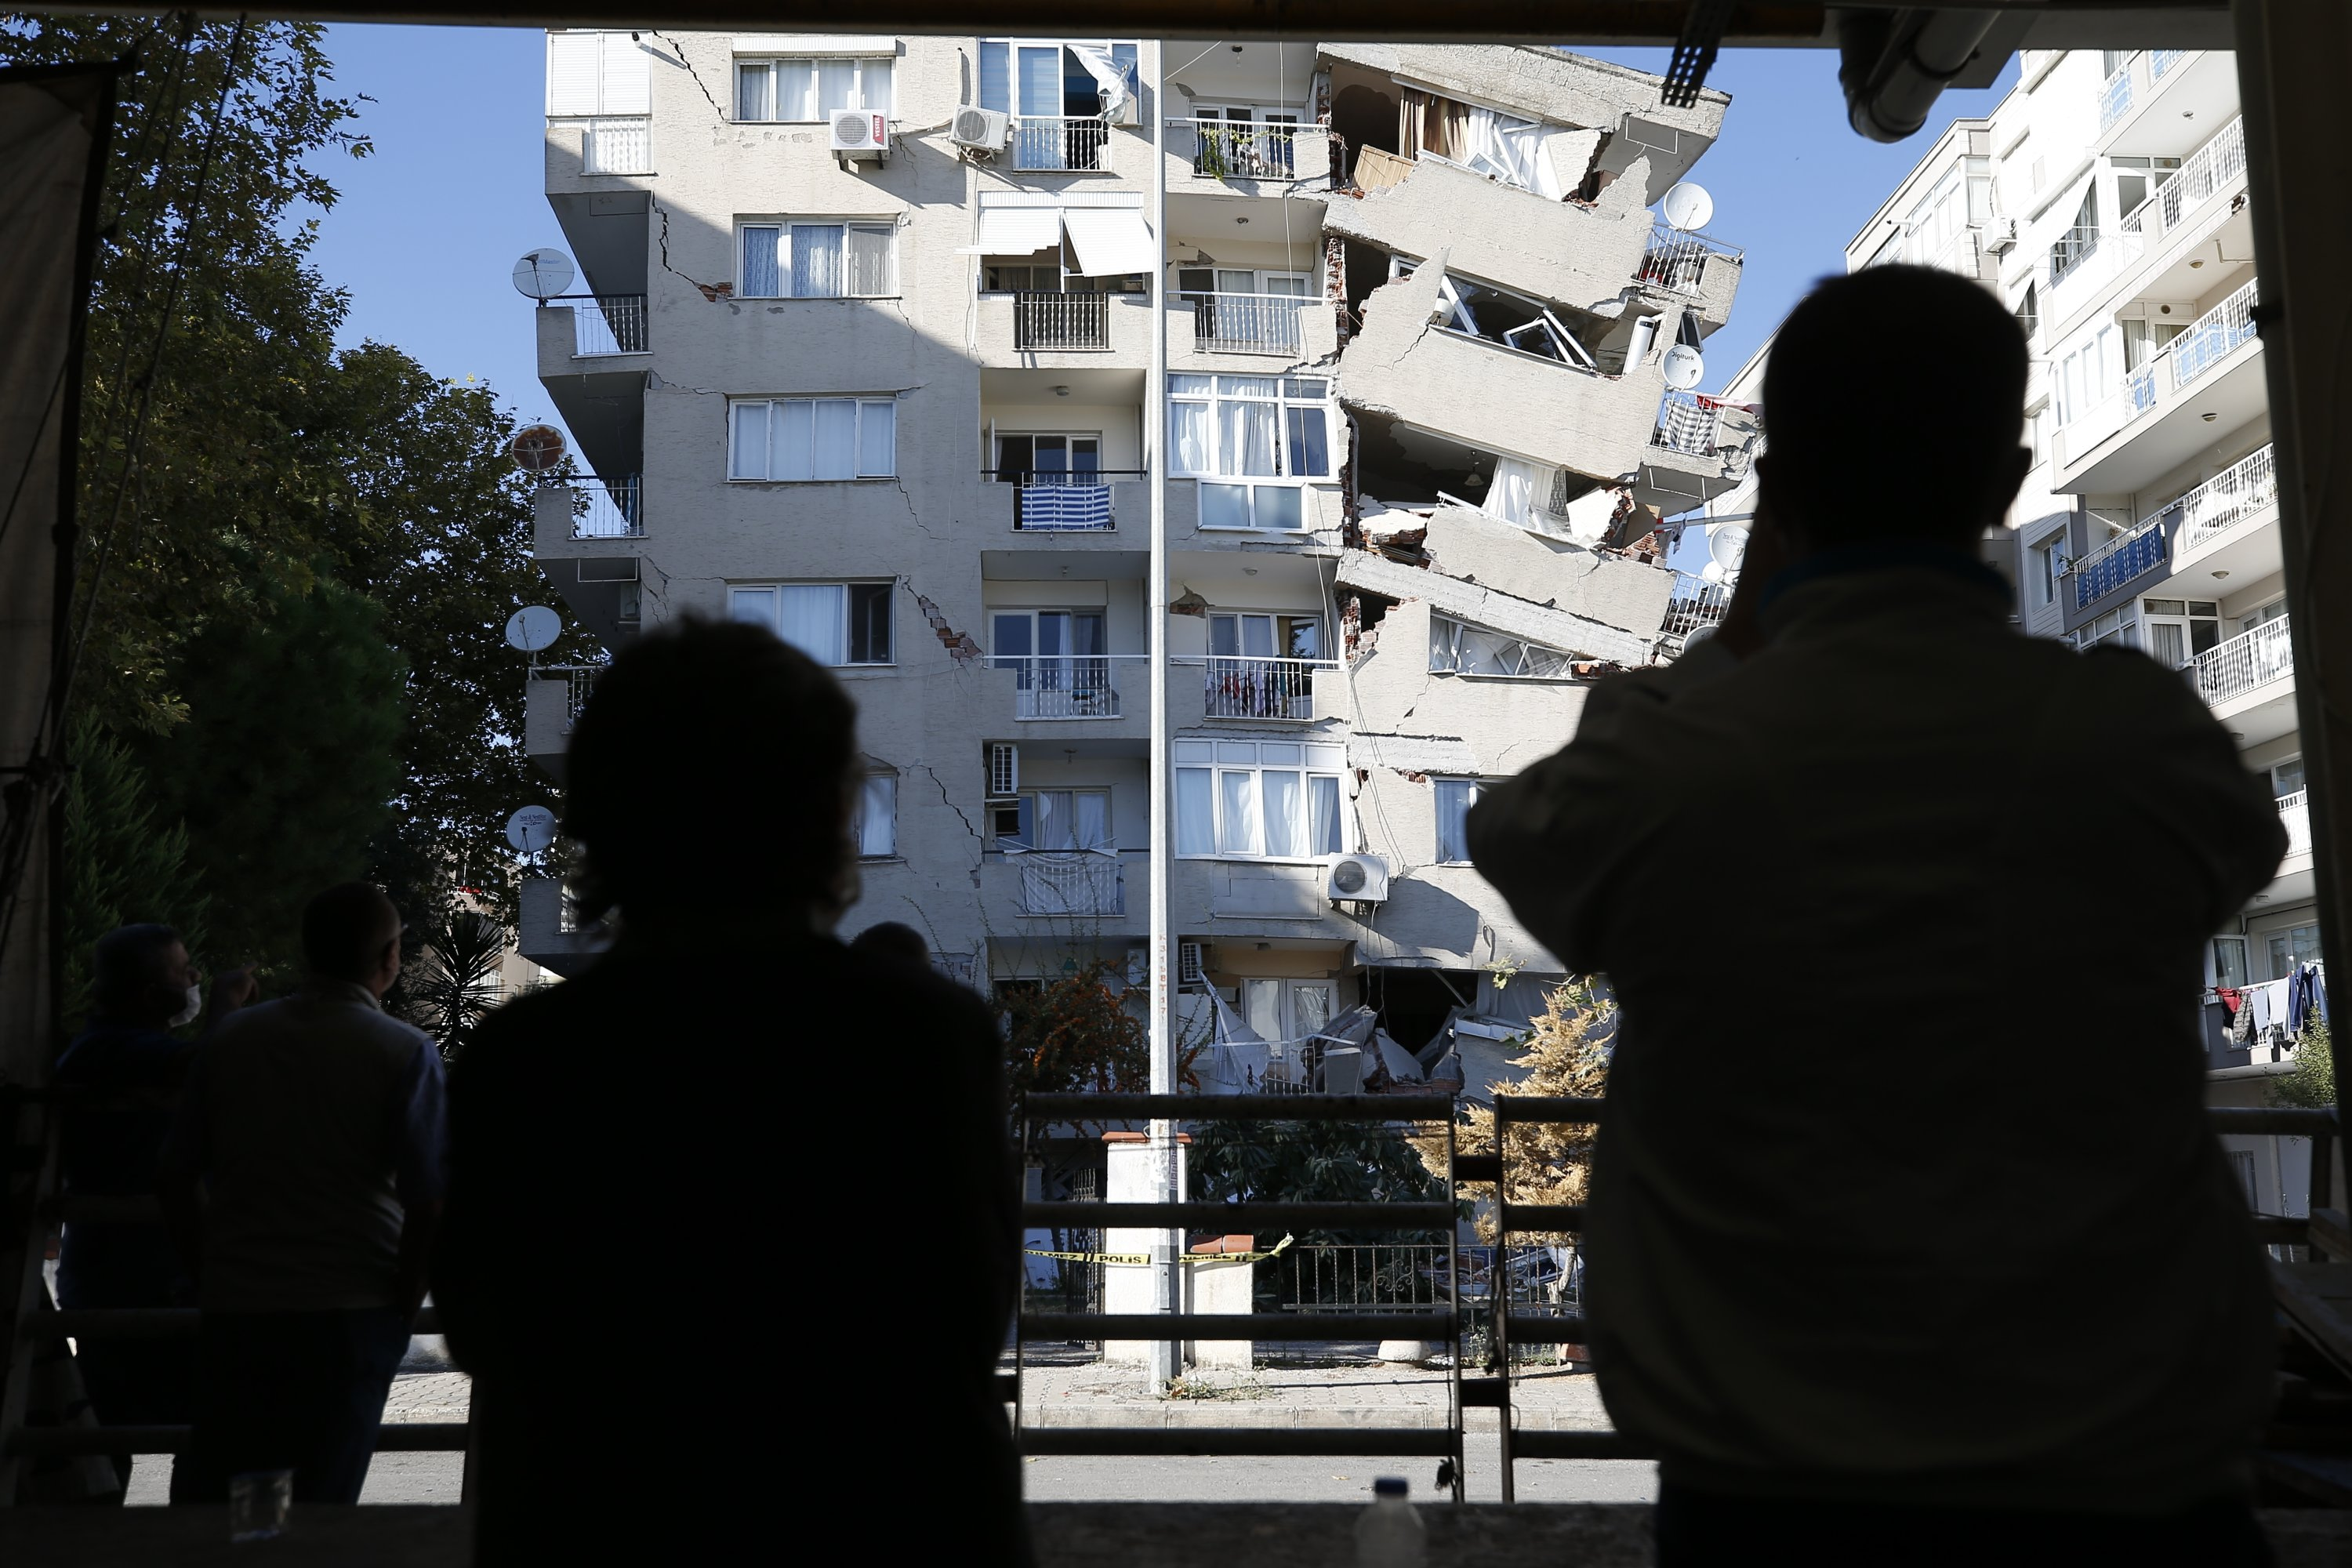 Local residents look at a heavily damaged building in Izmir, Turkey, Oct. 31, 2020. (AP Photo)